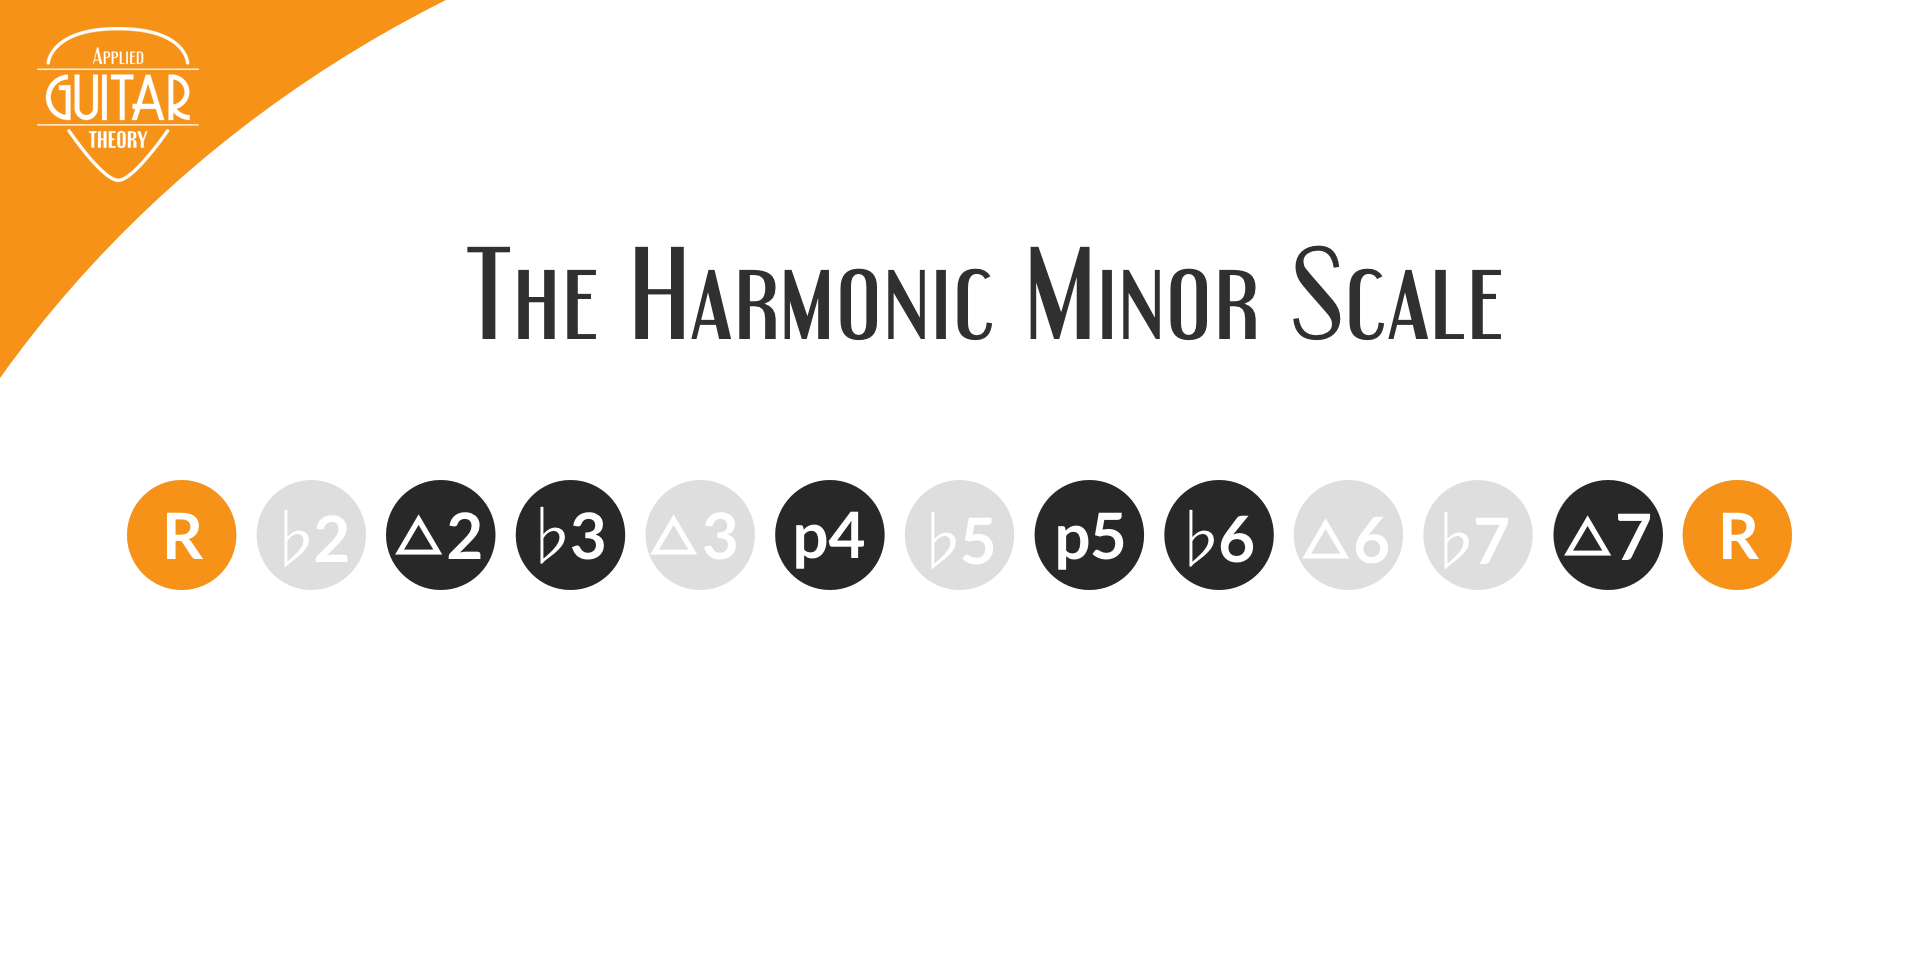 Harmonic minor scale featured image